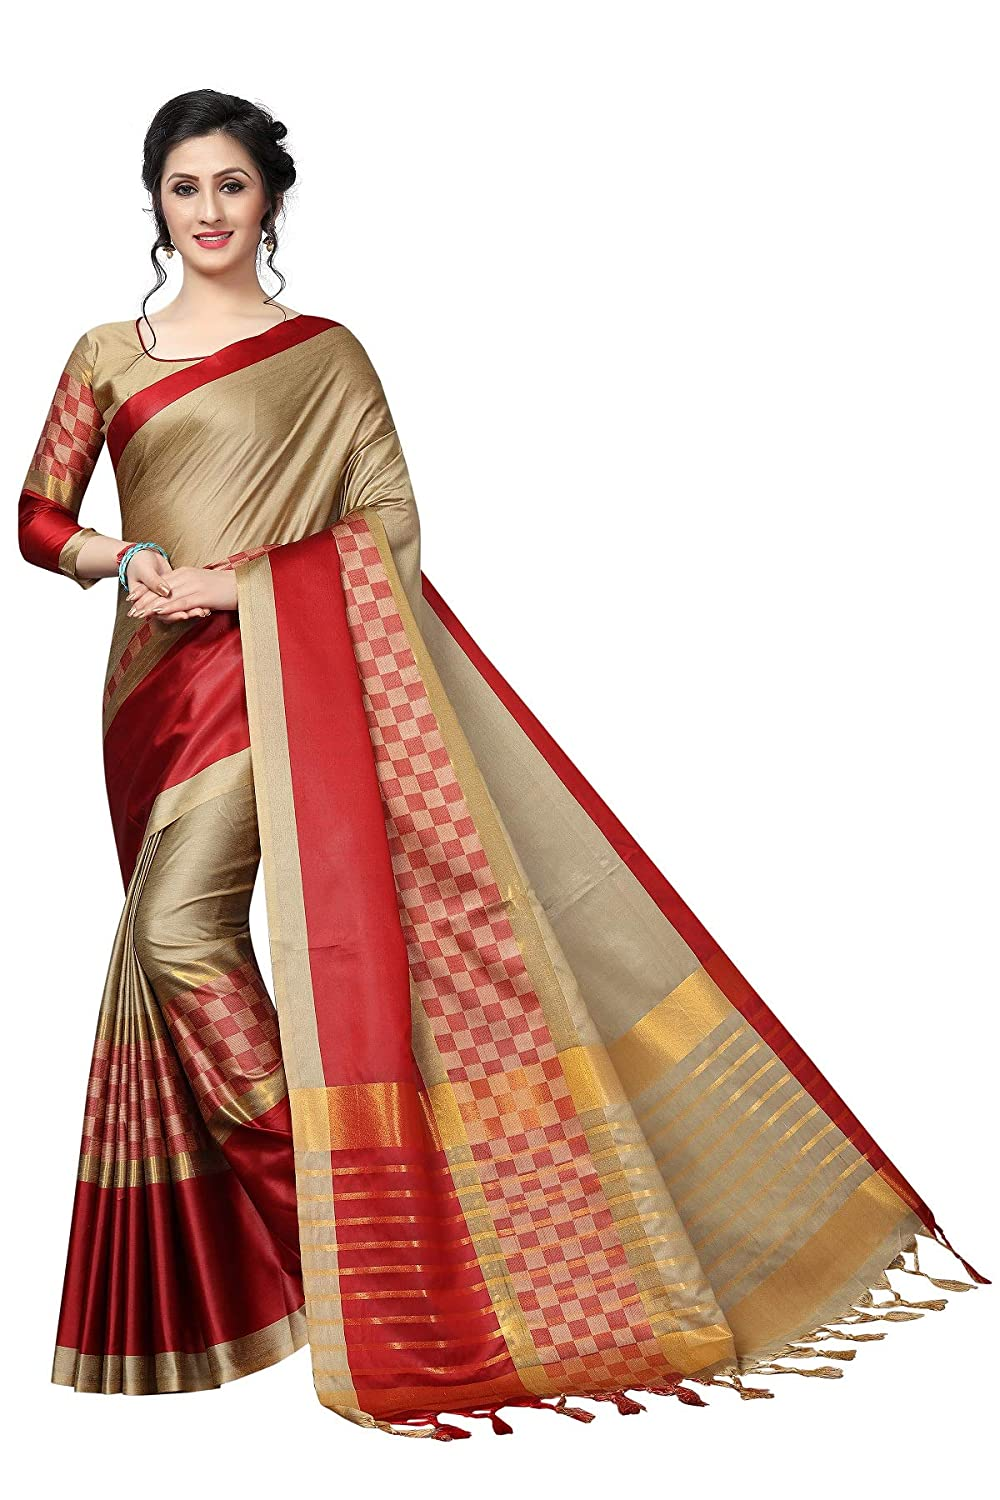 a3af5ca34a AnK Women's Latest Cotton Silk Saree with Blouse Piece (Chiku): Amazon.in:  Clothing & Accessories